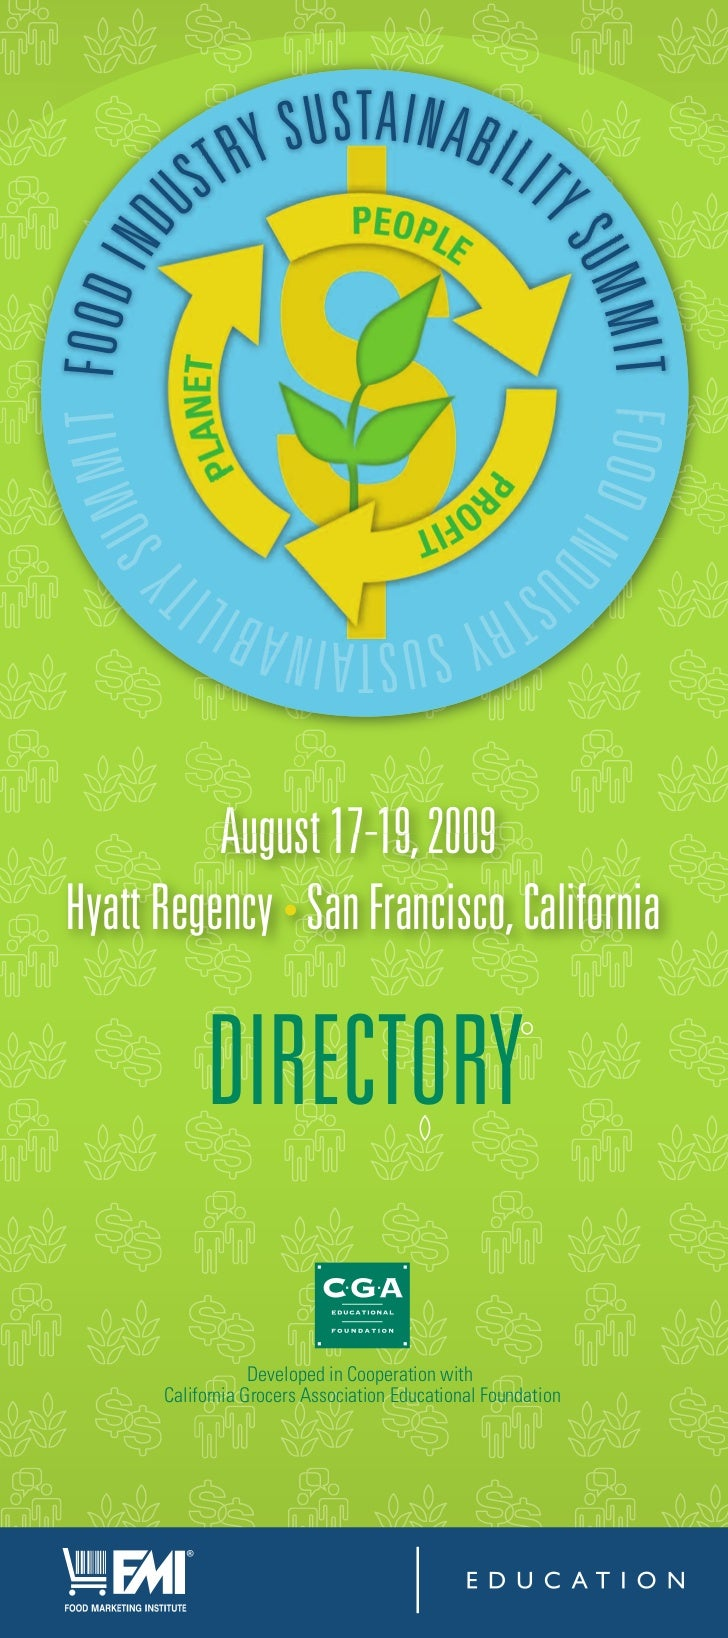 August 17 19, 2009 Hyatt Regency • San Francisco, California             DIRECTORY                    Developed in Coopera...